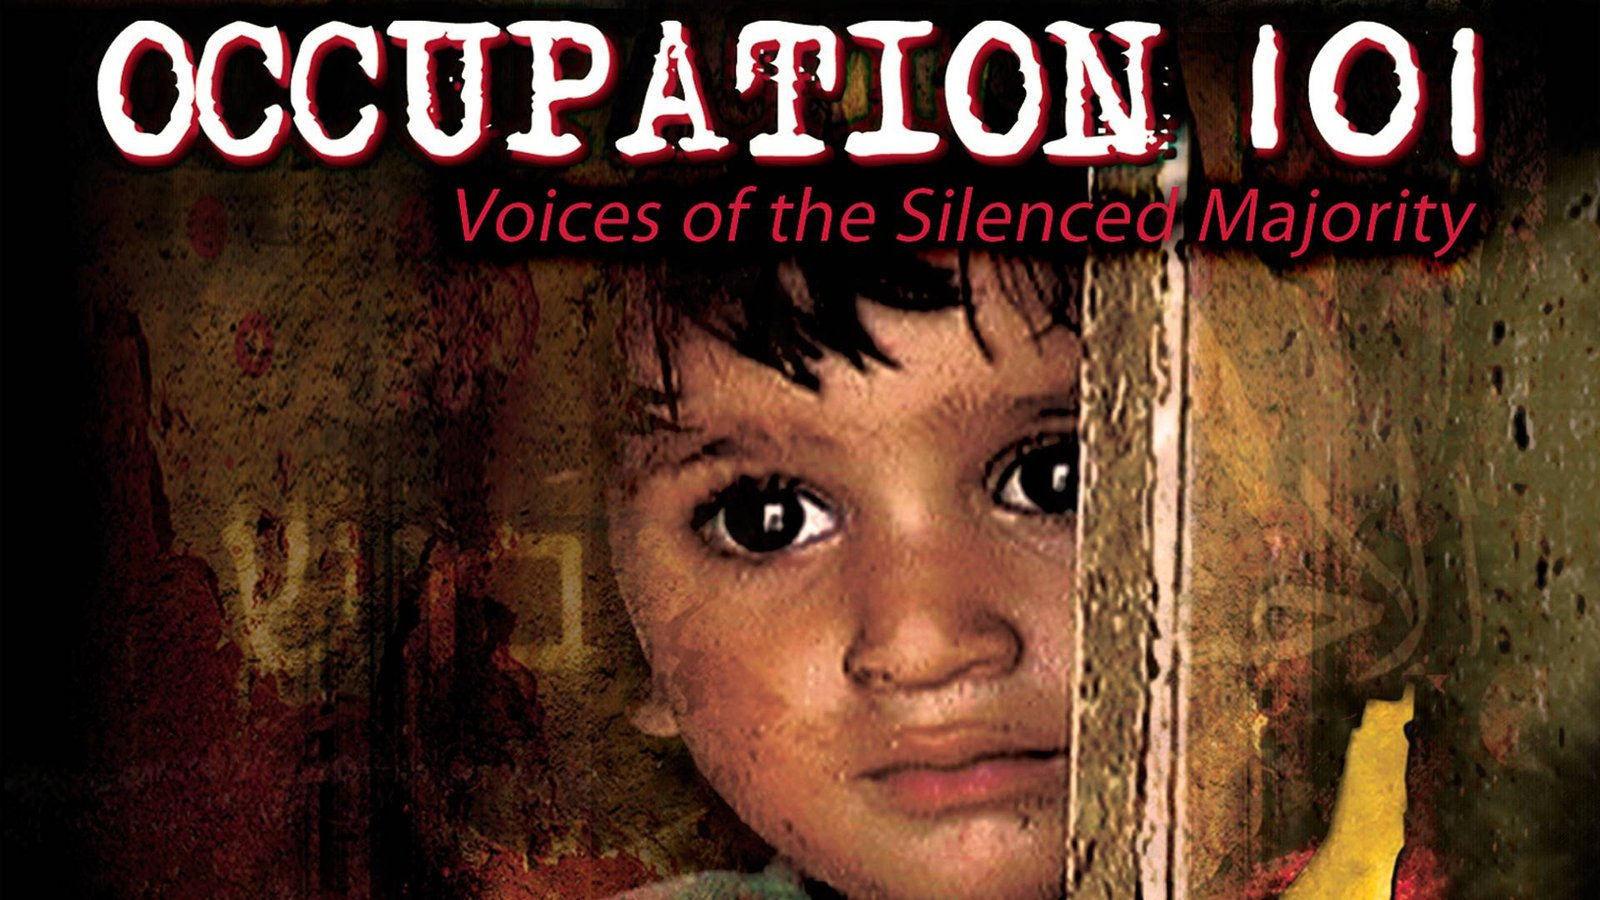 Occupation 101: Voices of the Silenced Majority